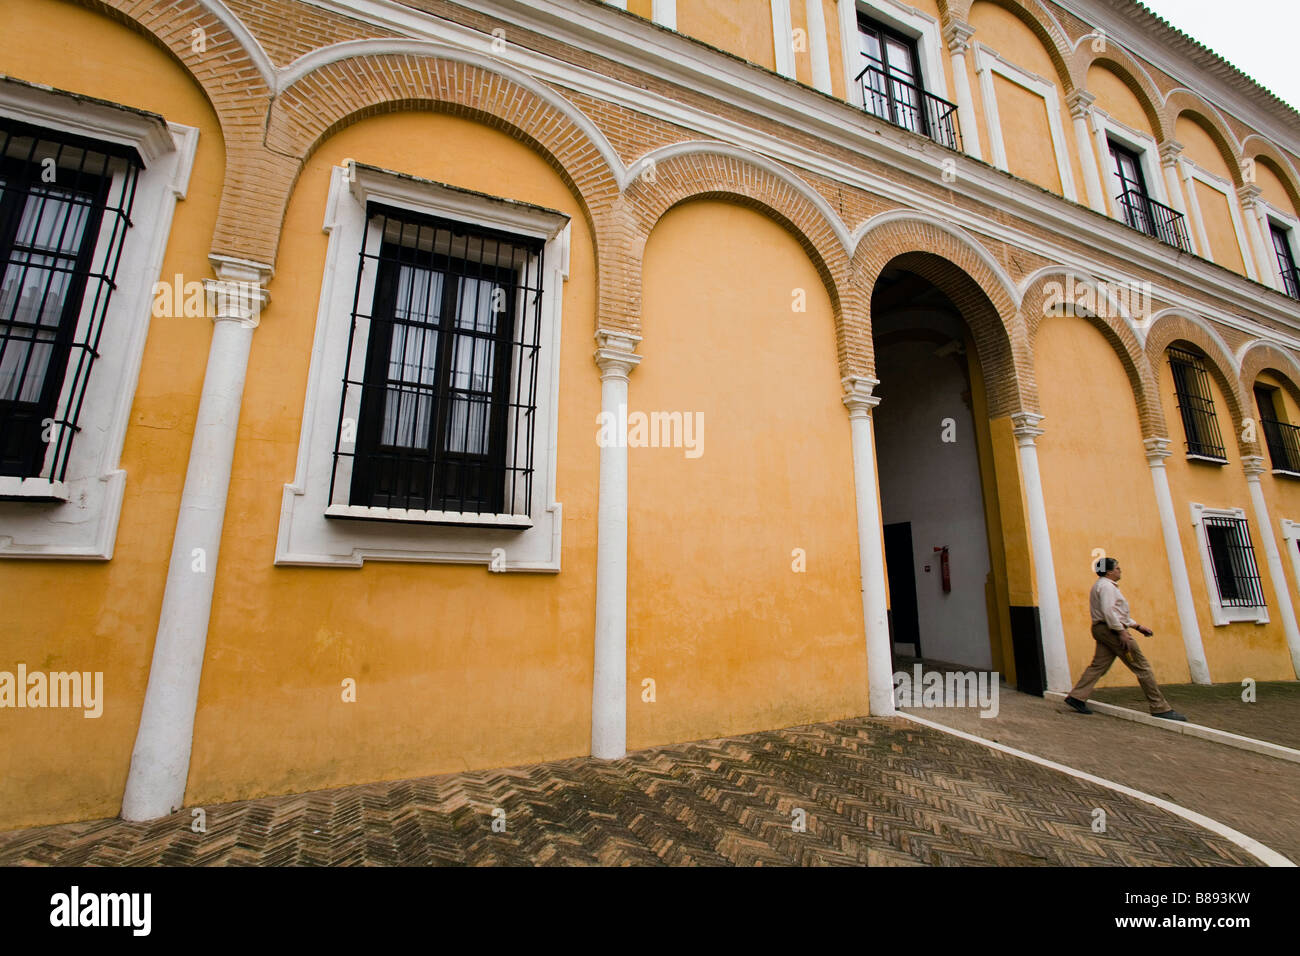 A courtyard inside the Alcazar a Moorish inspired palace in Seville Spain - Stock Image